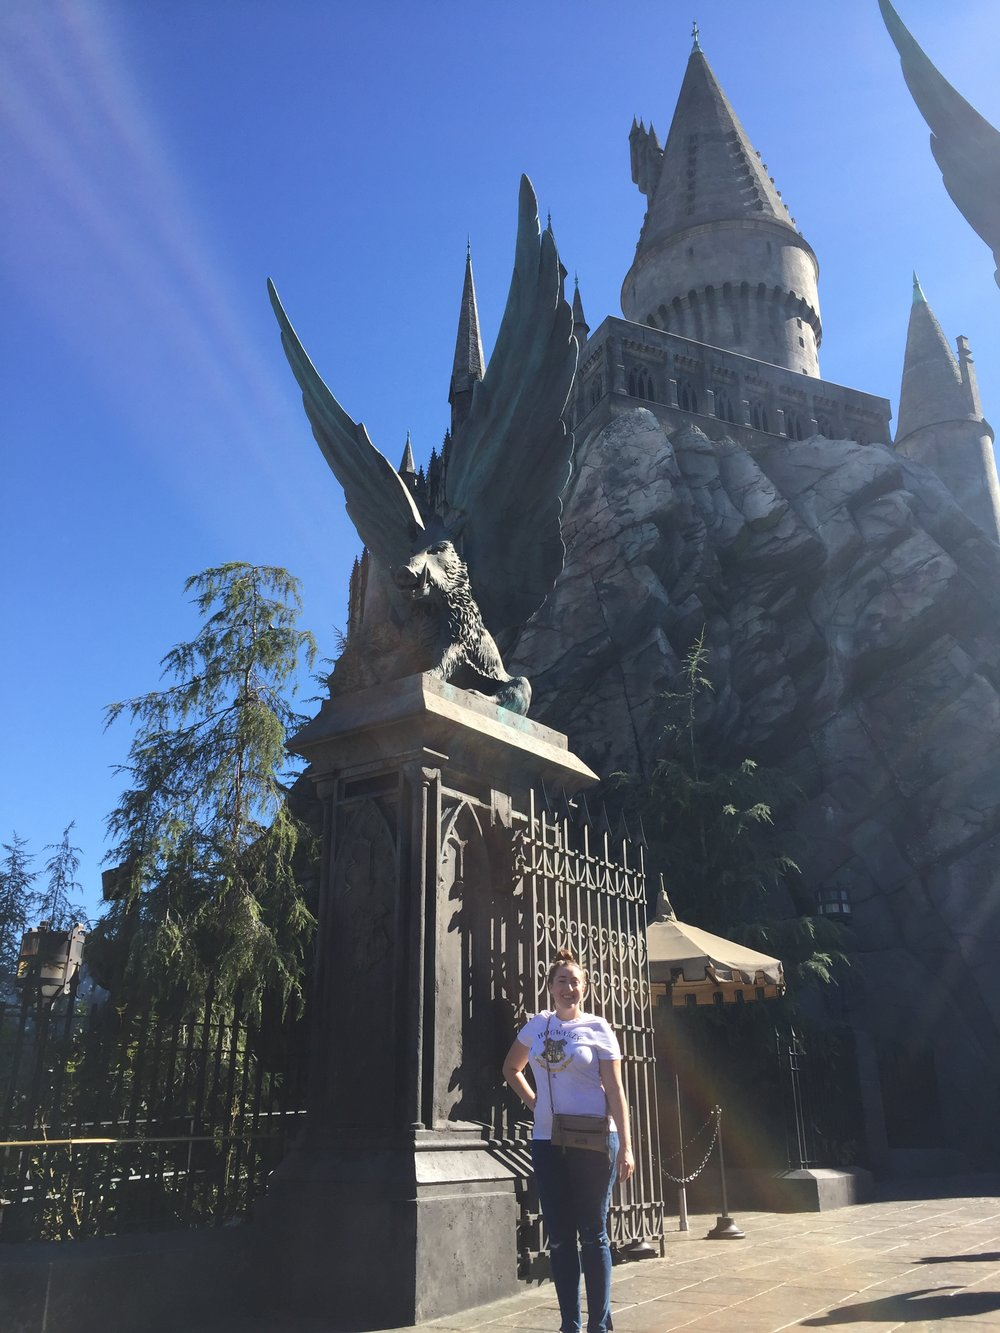 [image description: Me standing in front of the gates of the Hogwarts castle. There are tall black gates with large columns on either side, each with a statue of a boar with massive outstretched wings. The castle looms large in the background. I'm smiling at the camera and have one hand on my hip.]